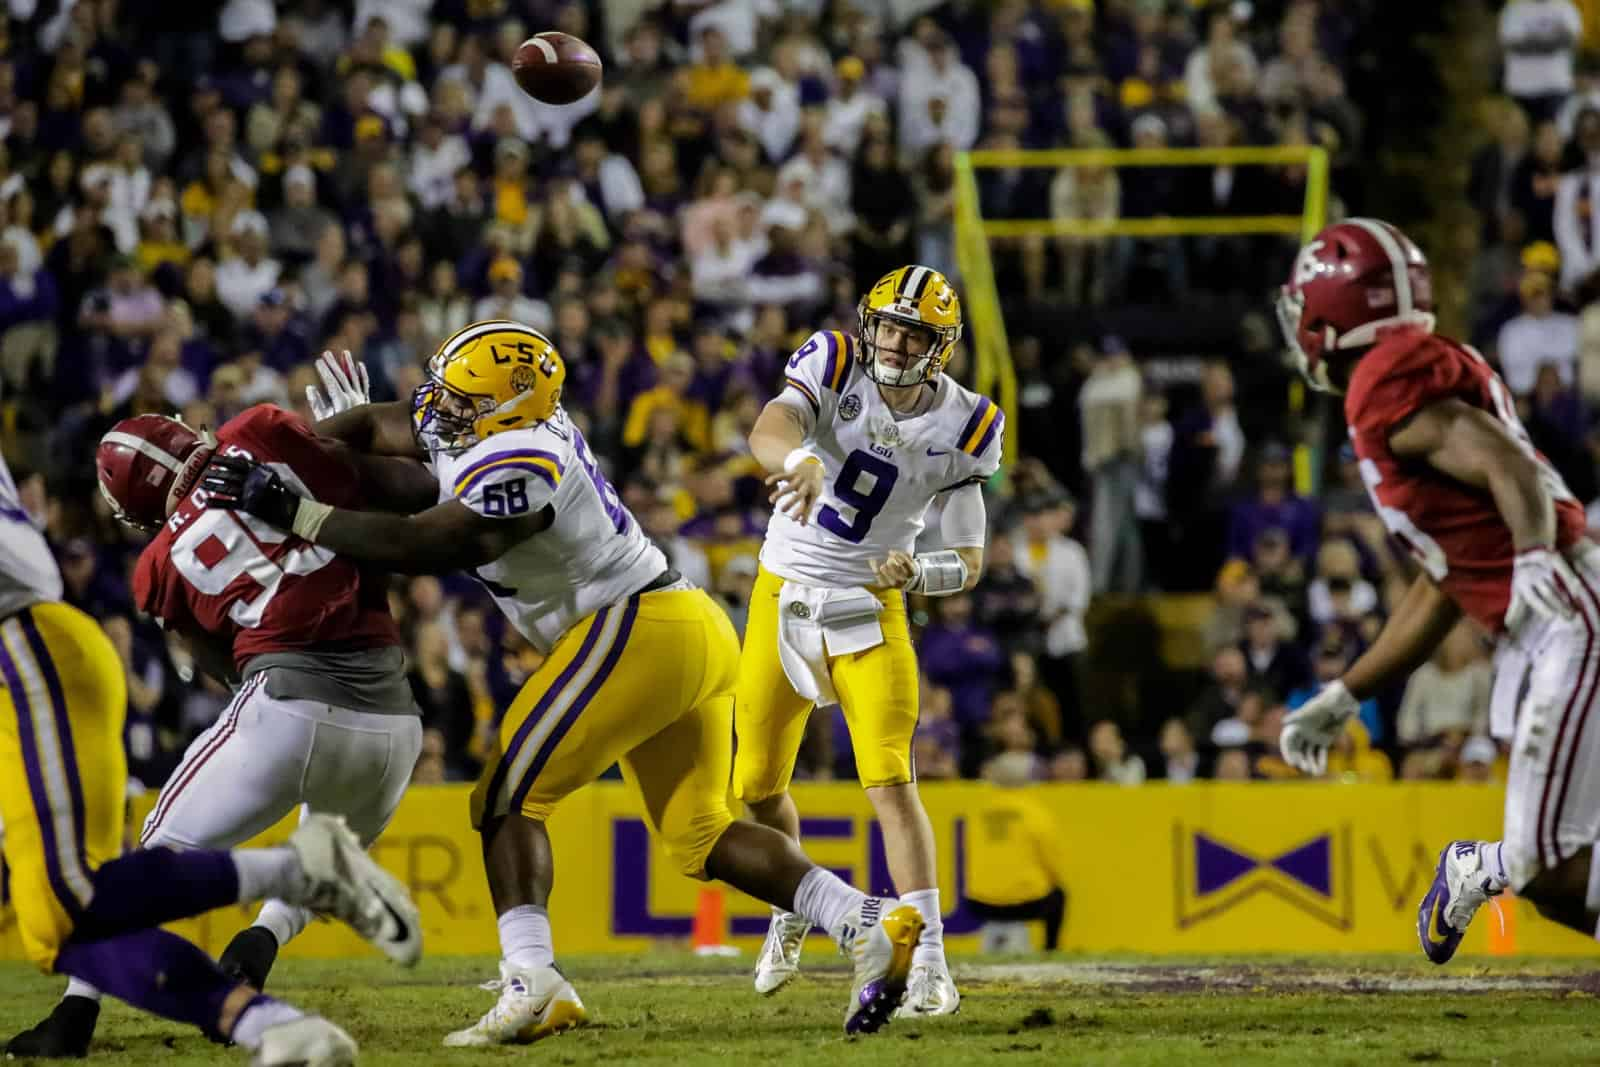 College Football Schedule Tv Selections For November 9 2019